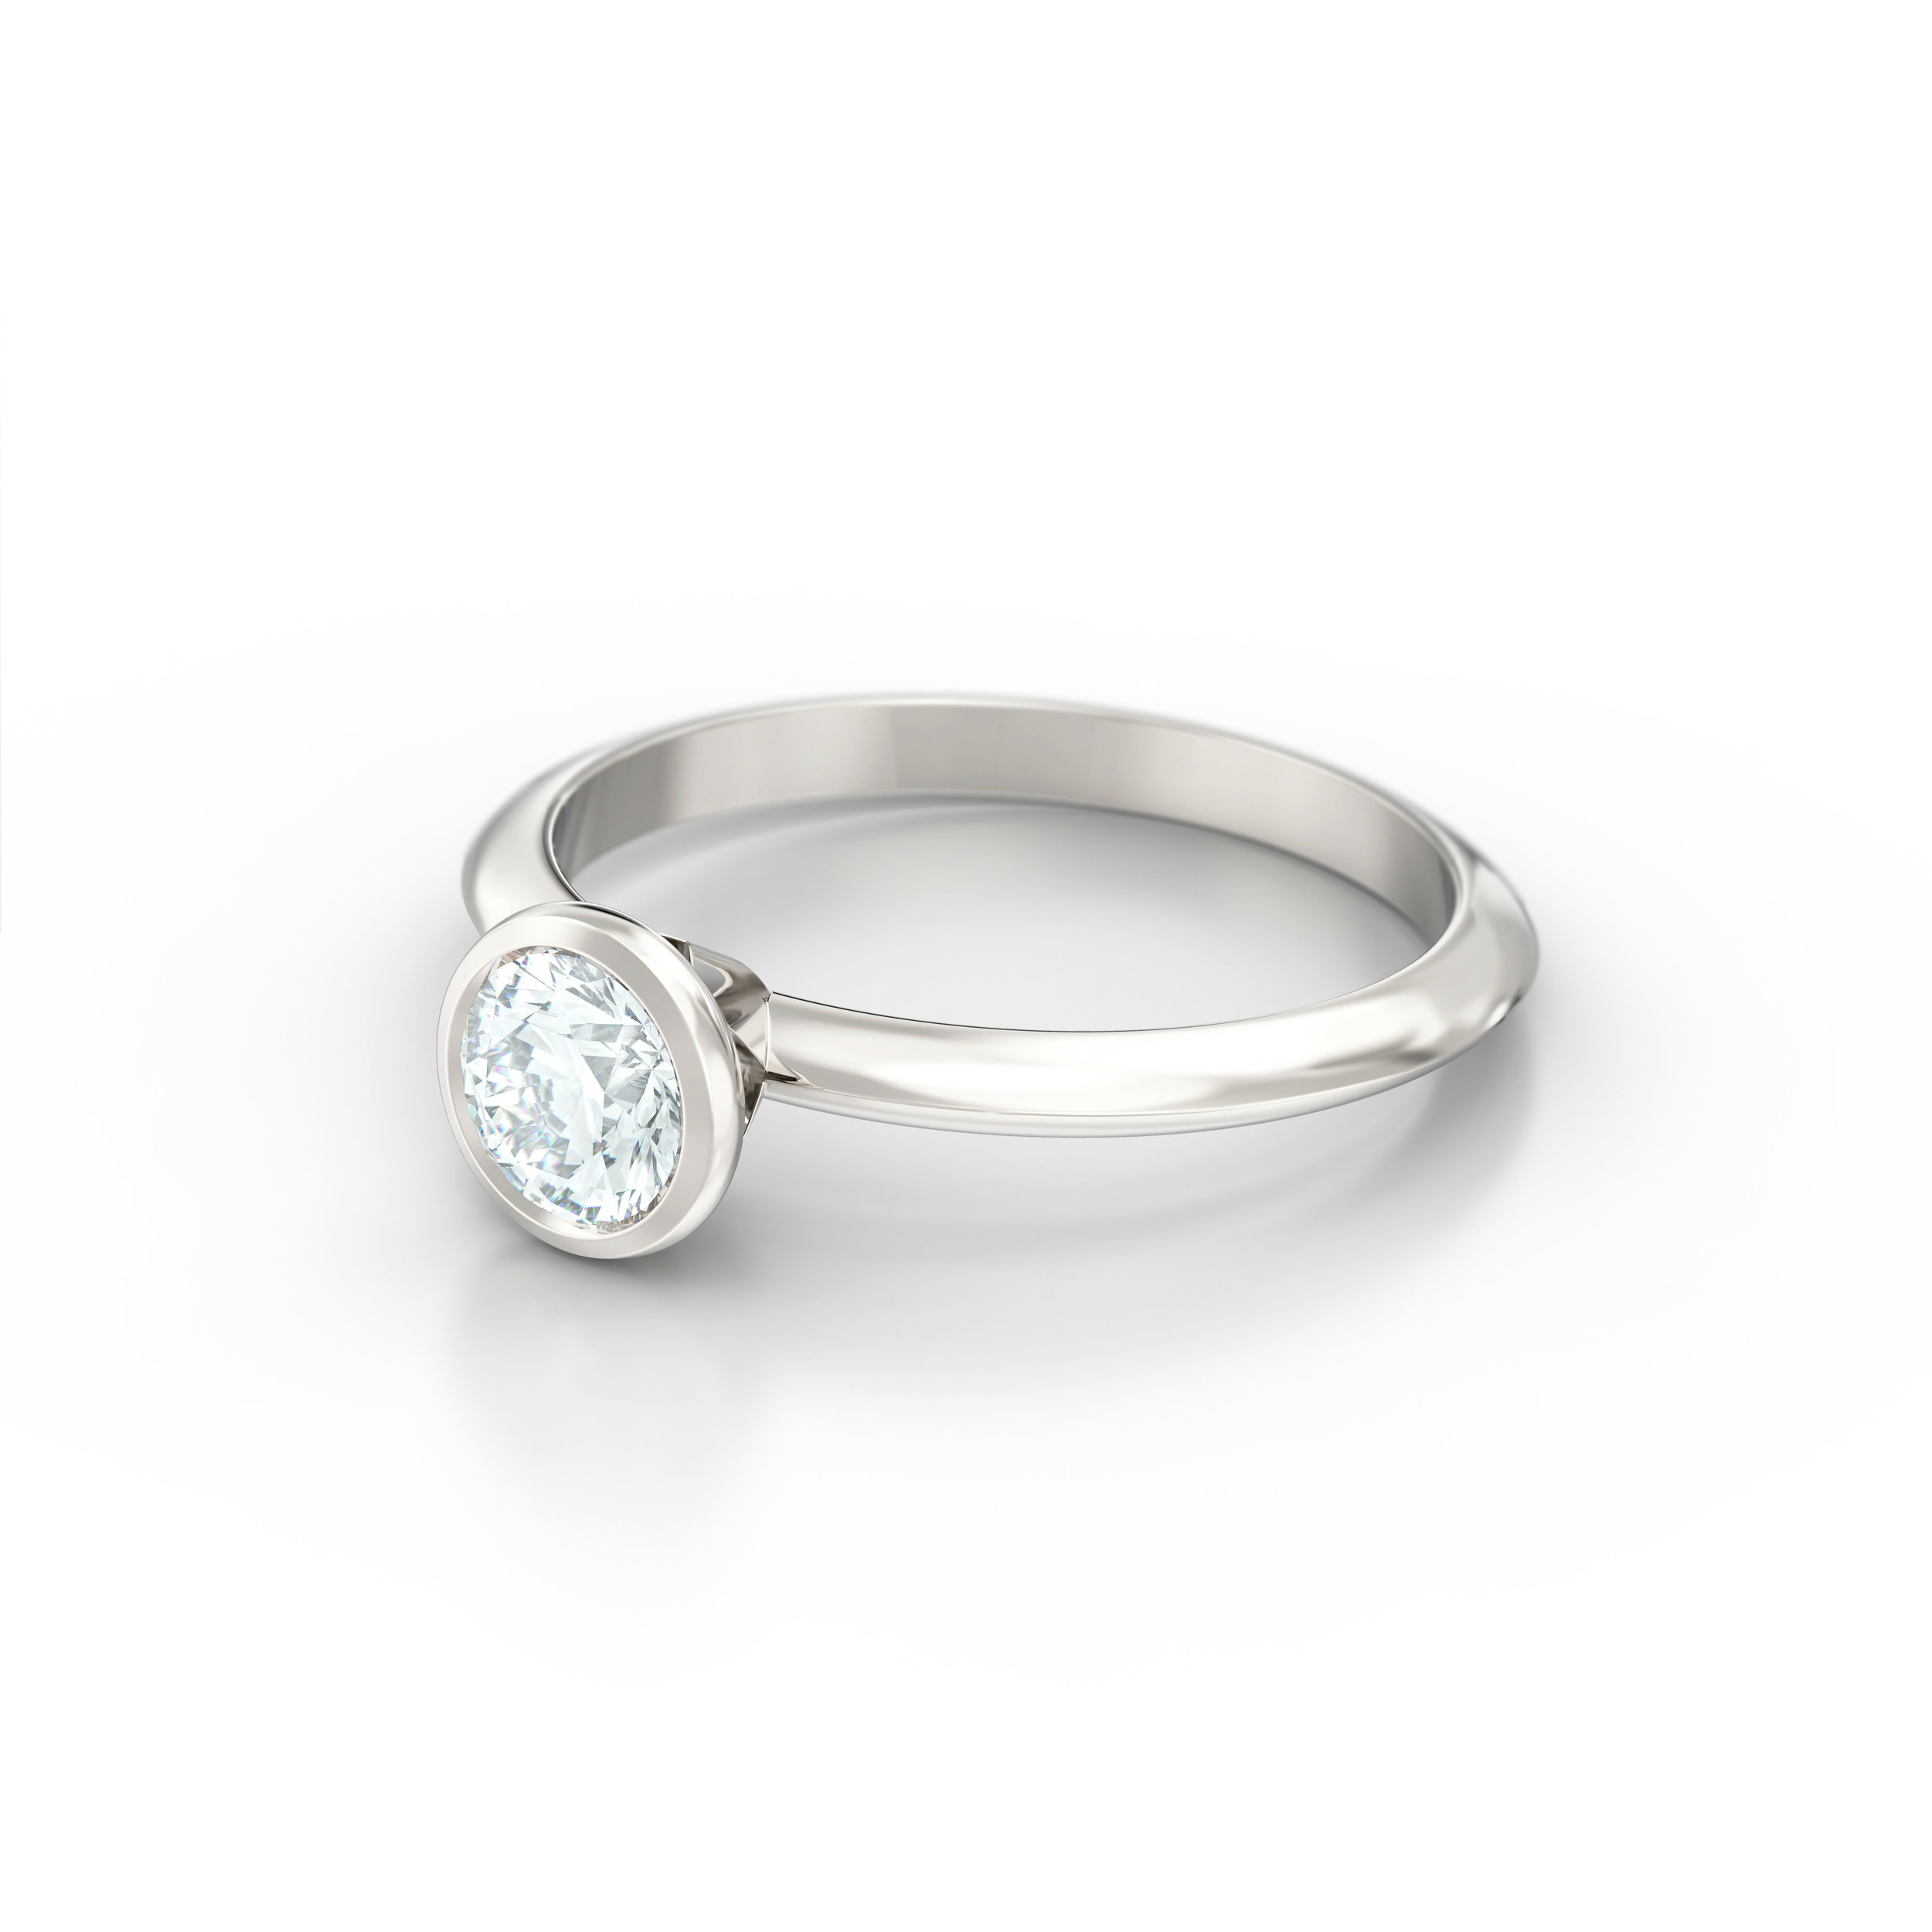 Rub Over Platinum Solitaire Engagement Ring | Hatton Garden